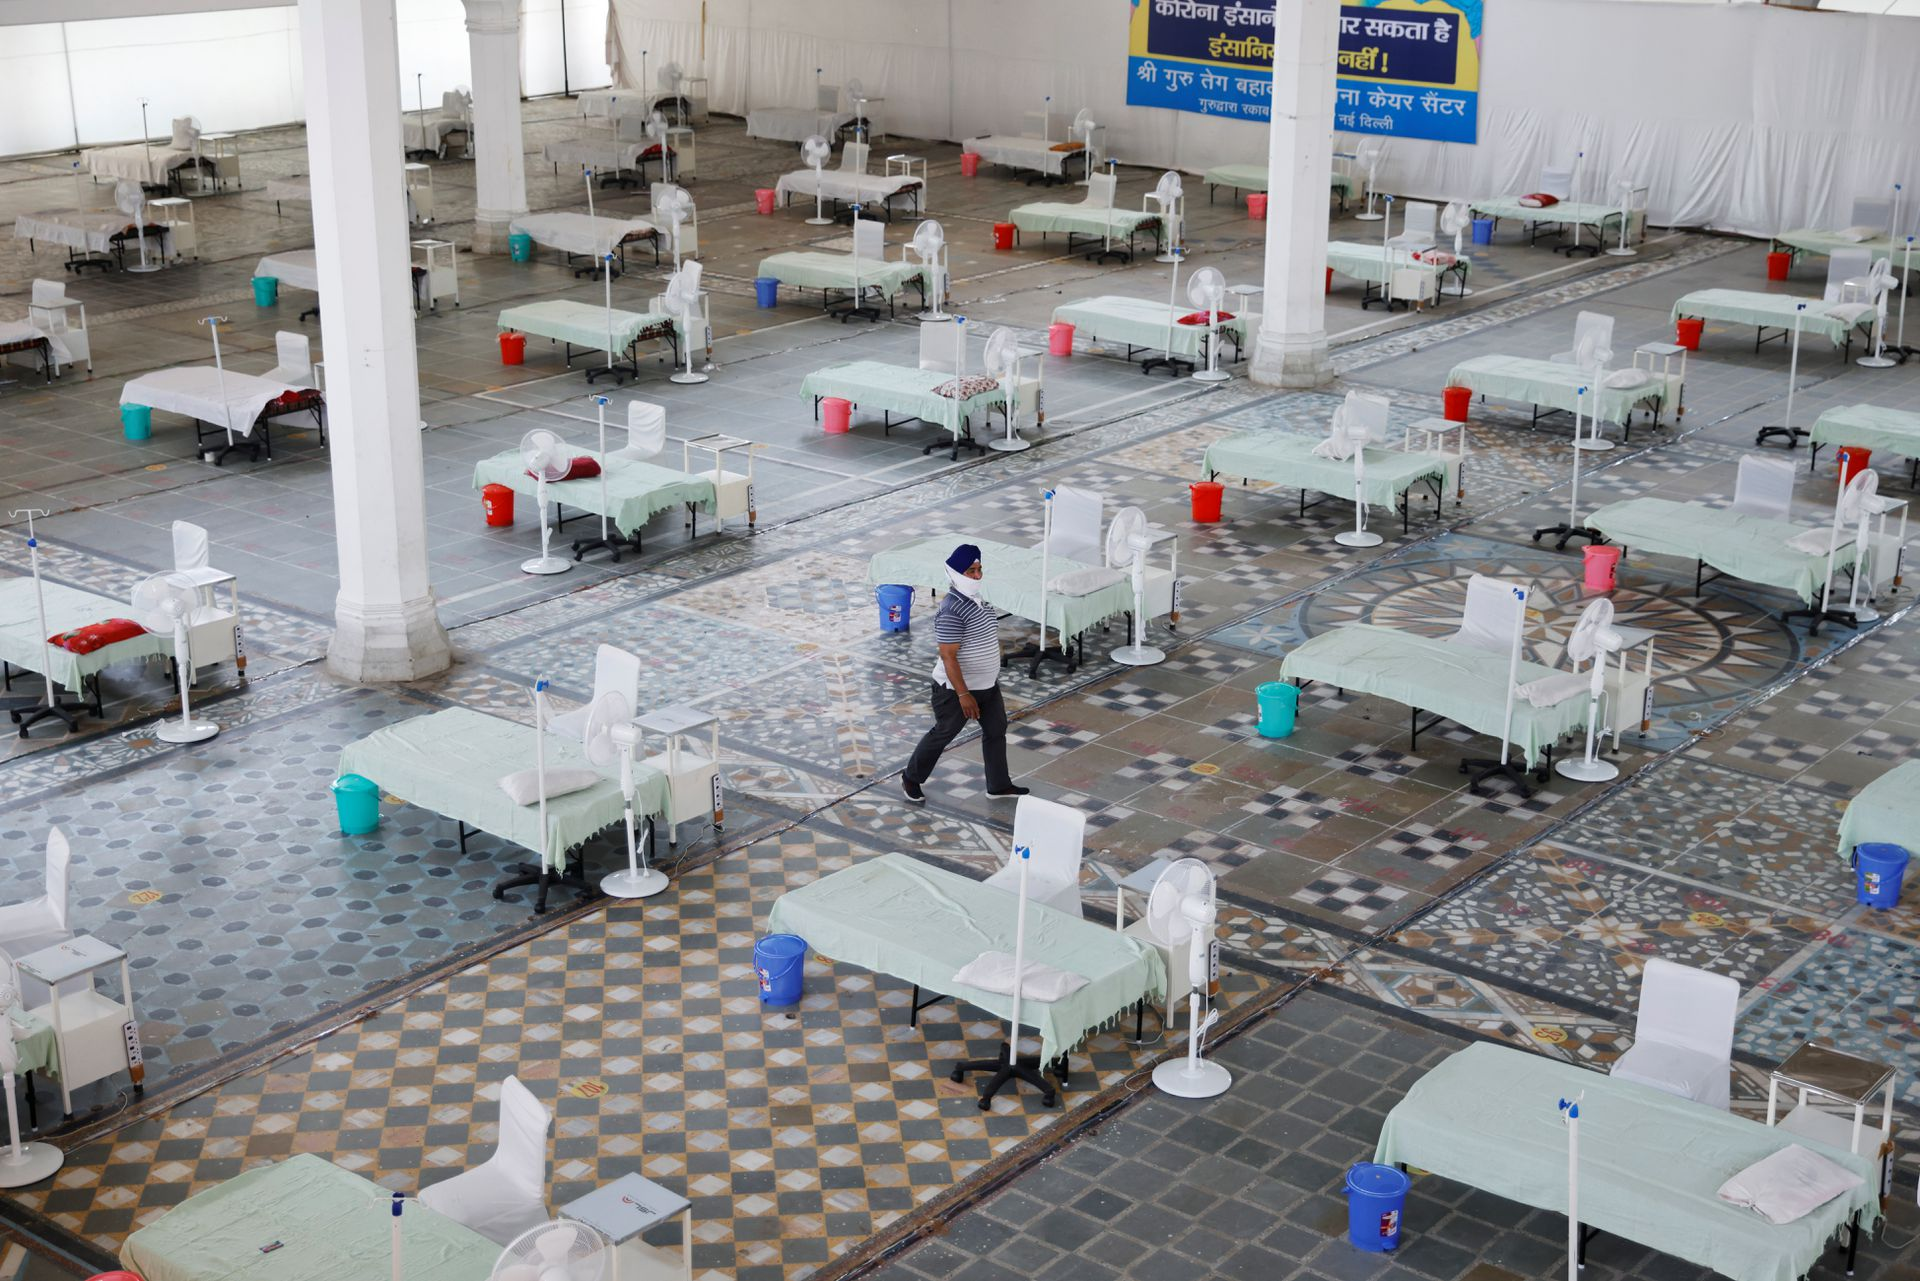 Beds are seen inside a Gurudwara (Sikh Temple) converted into a coronavirus disease (COVID-19) care facility amidst the spread of the COVID-19 in New Delhi, India May 5, 2021. Photo: Reuters